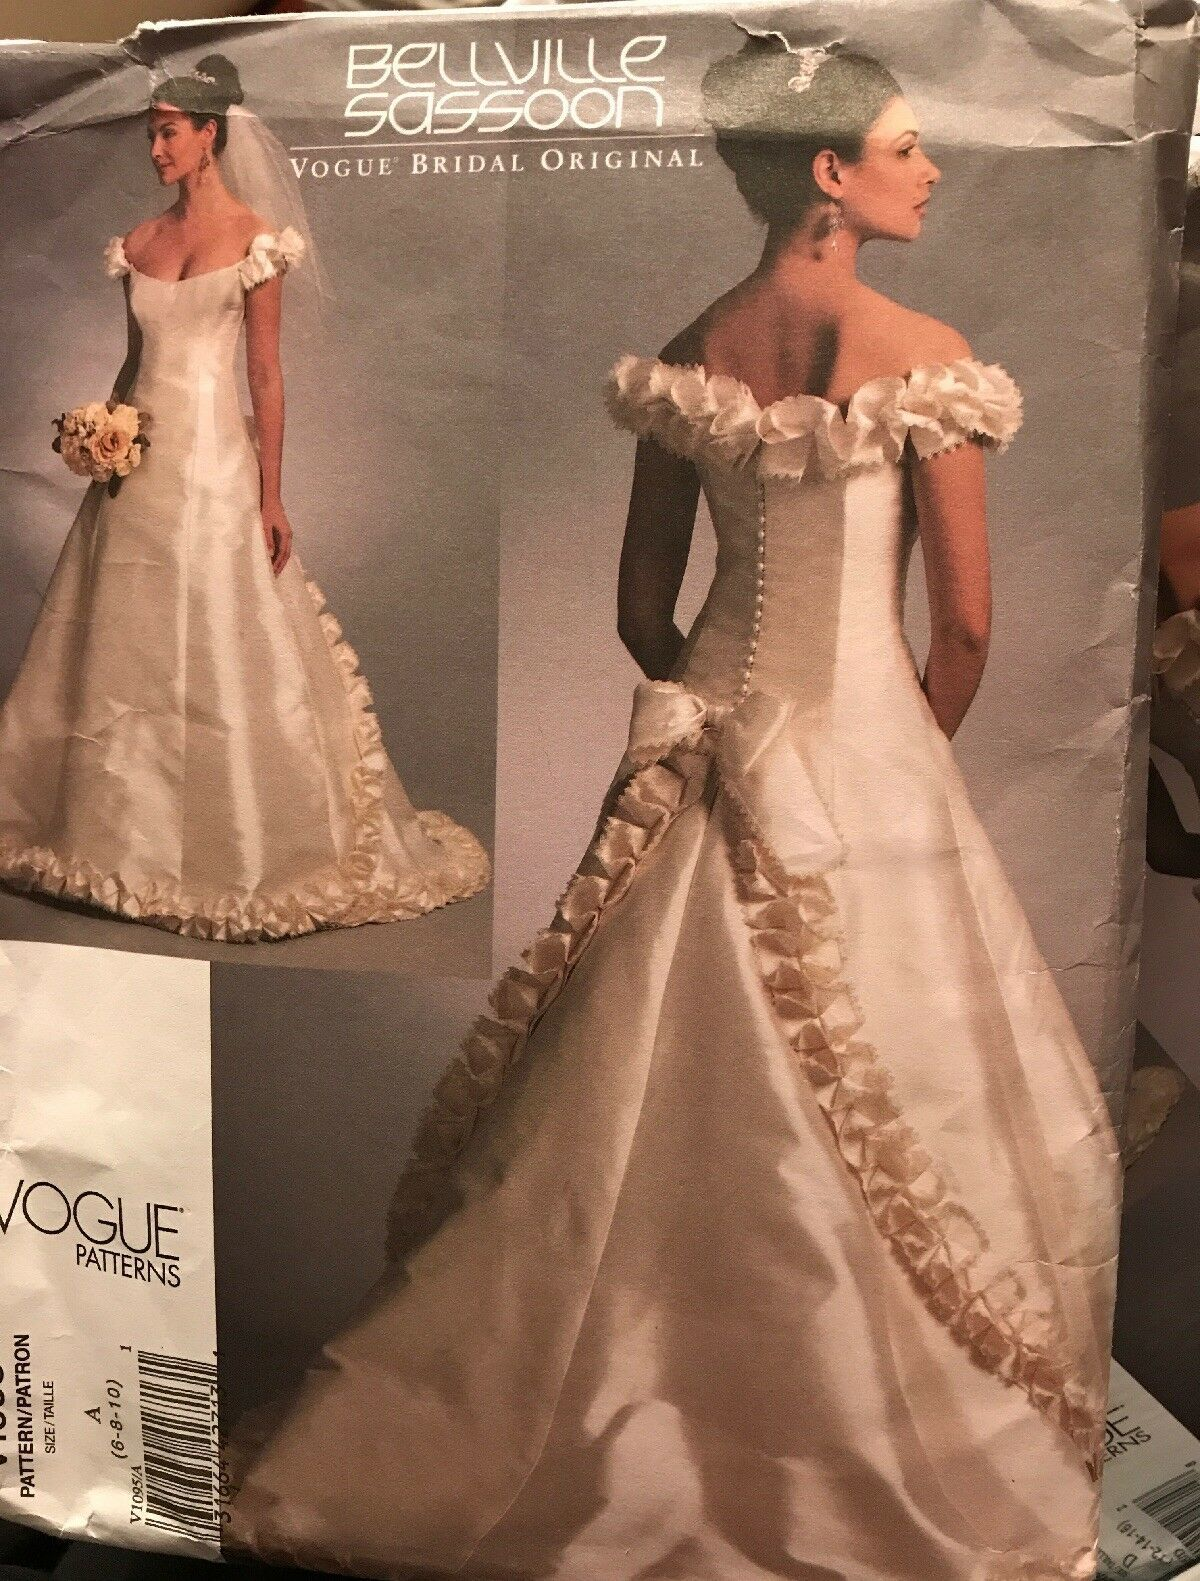 Primary image for Vogue V1095 Bellville Sassoon Bridal Original Wedding Dress 6-10 Uncut Pattern